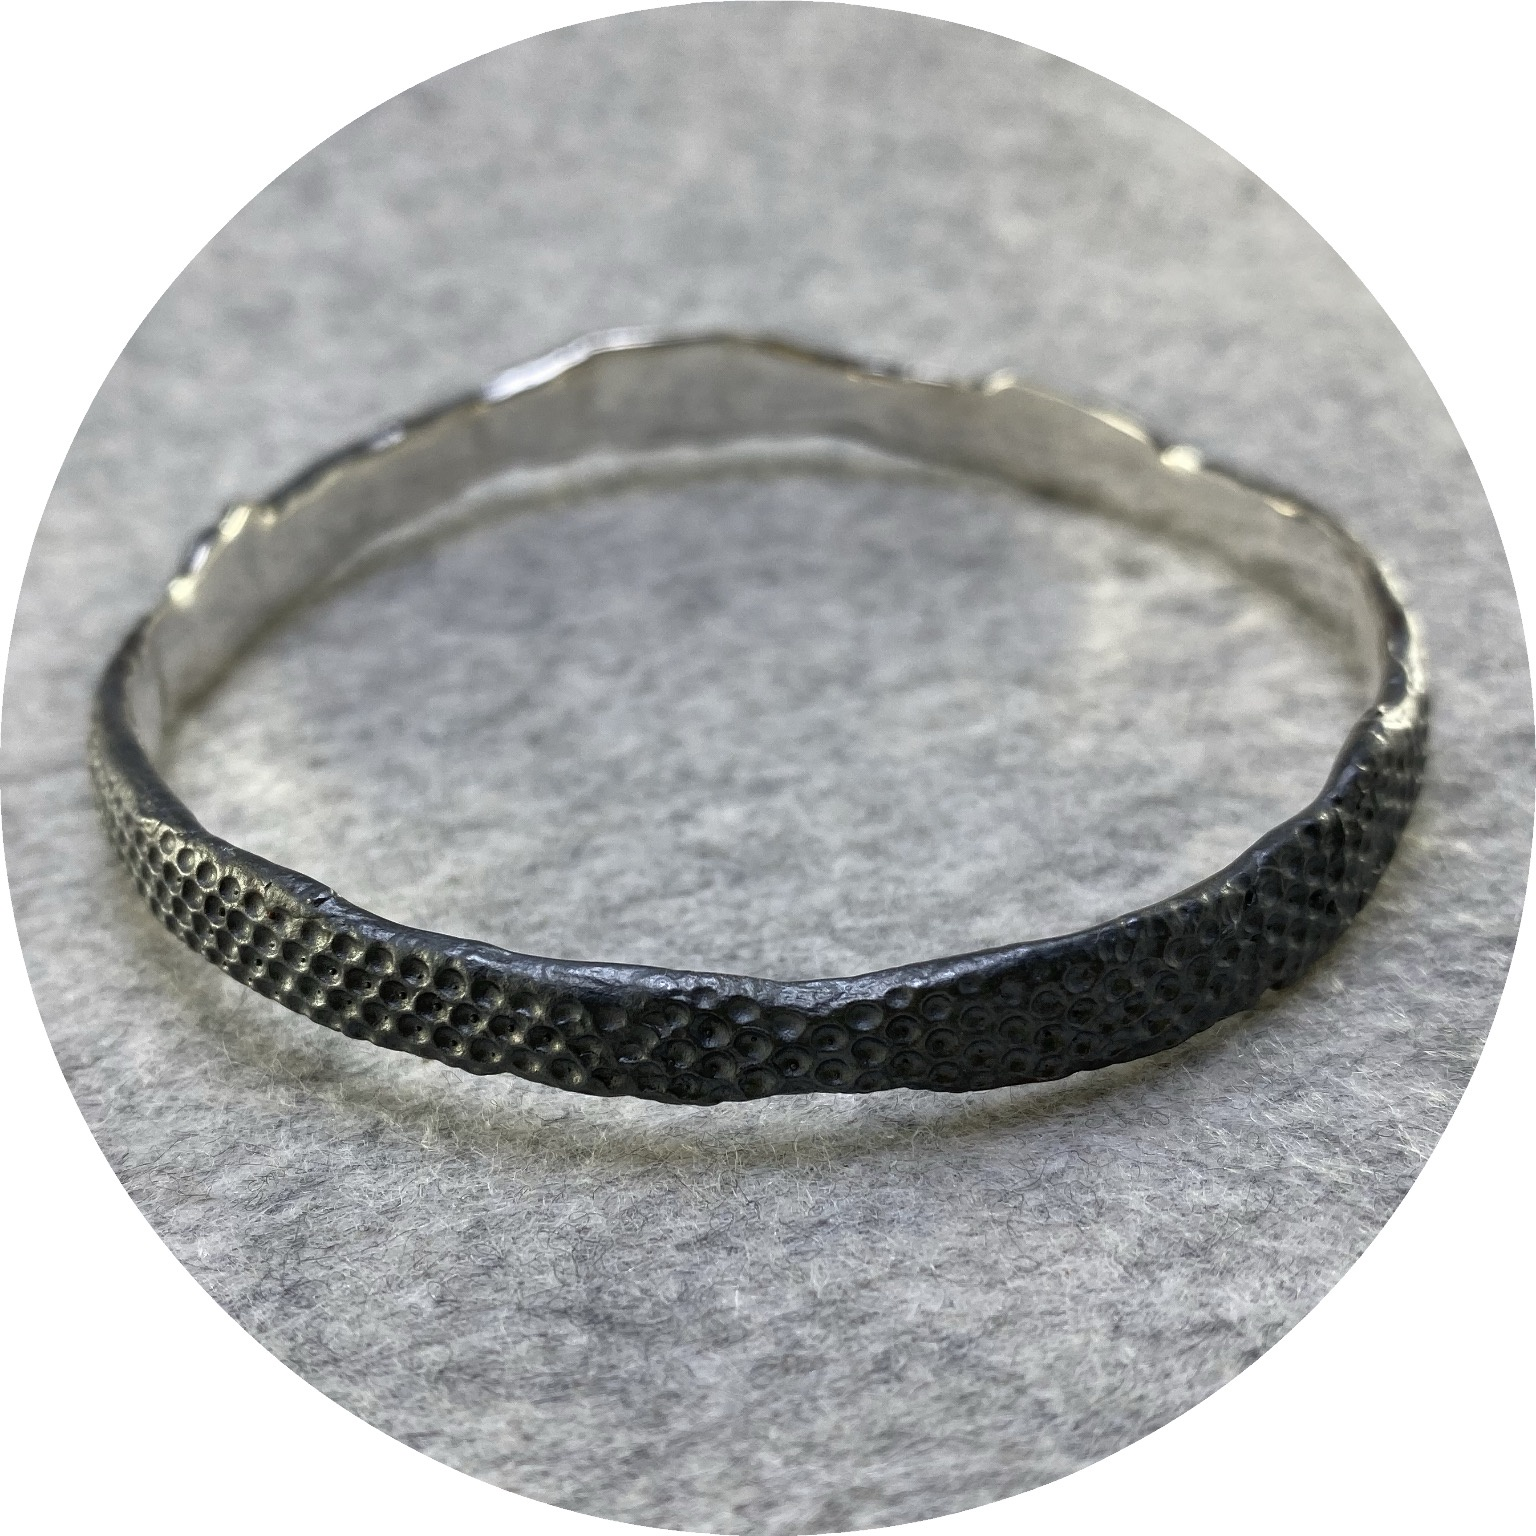 Georgie Brooks - 'Terrain Series Organic Bangle',  925 silver